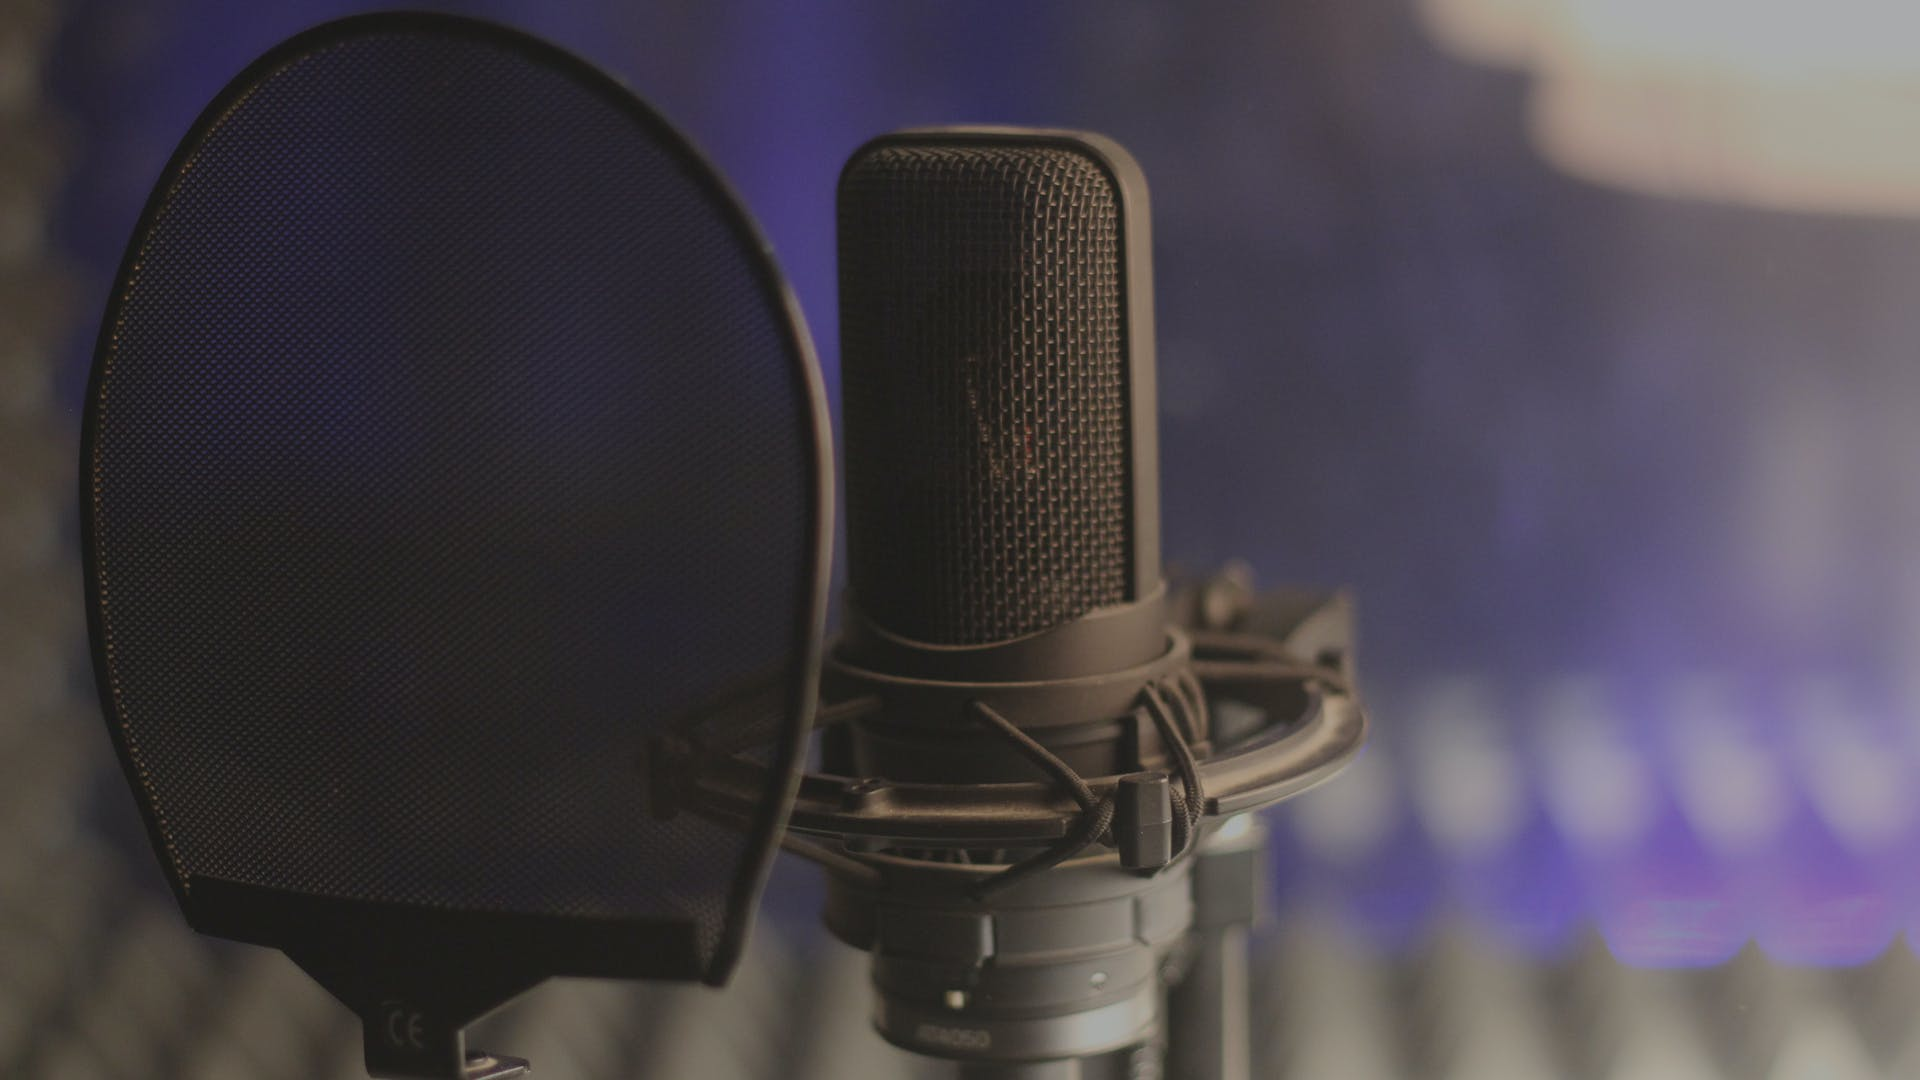 Free stock photo of live music, microphone, microphone stand, music